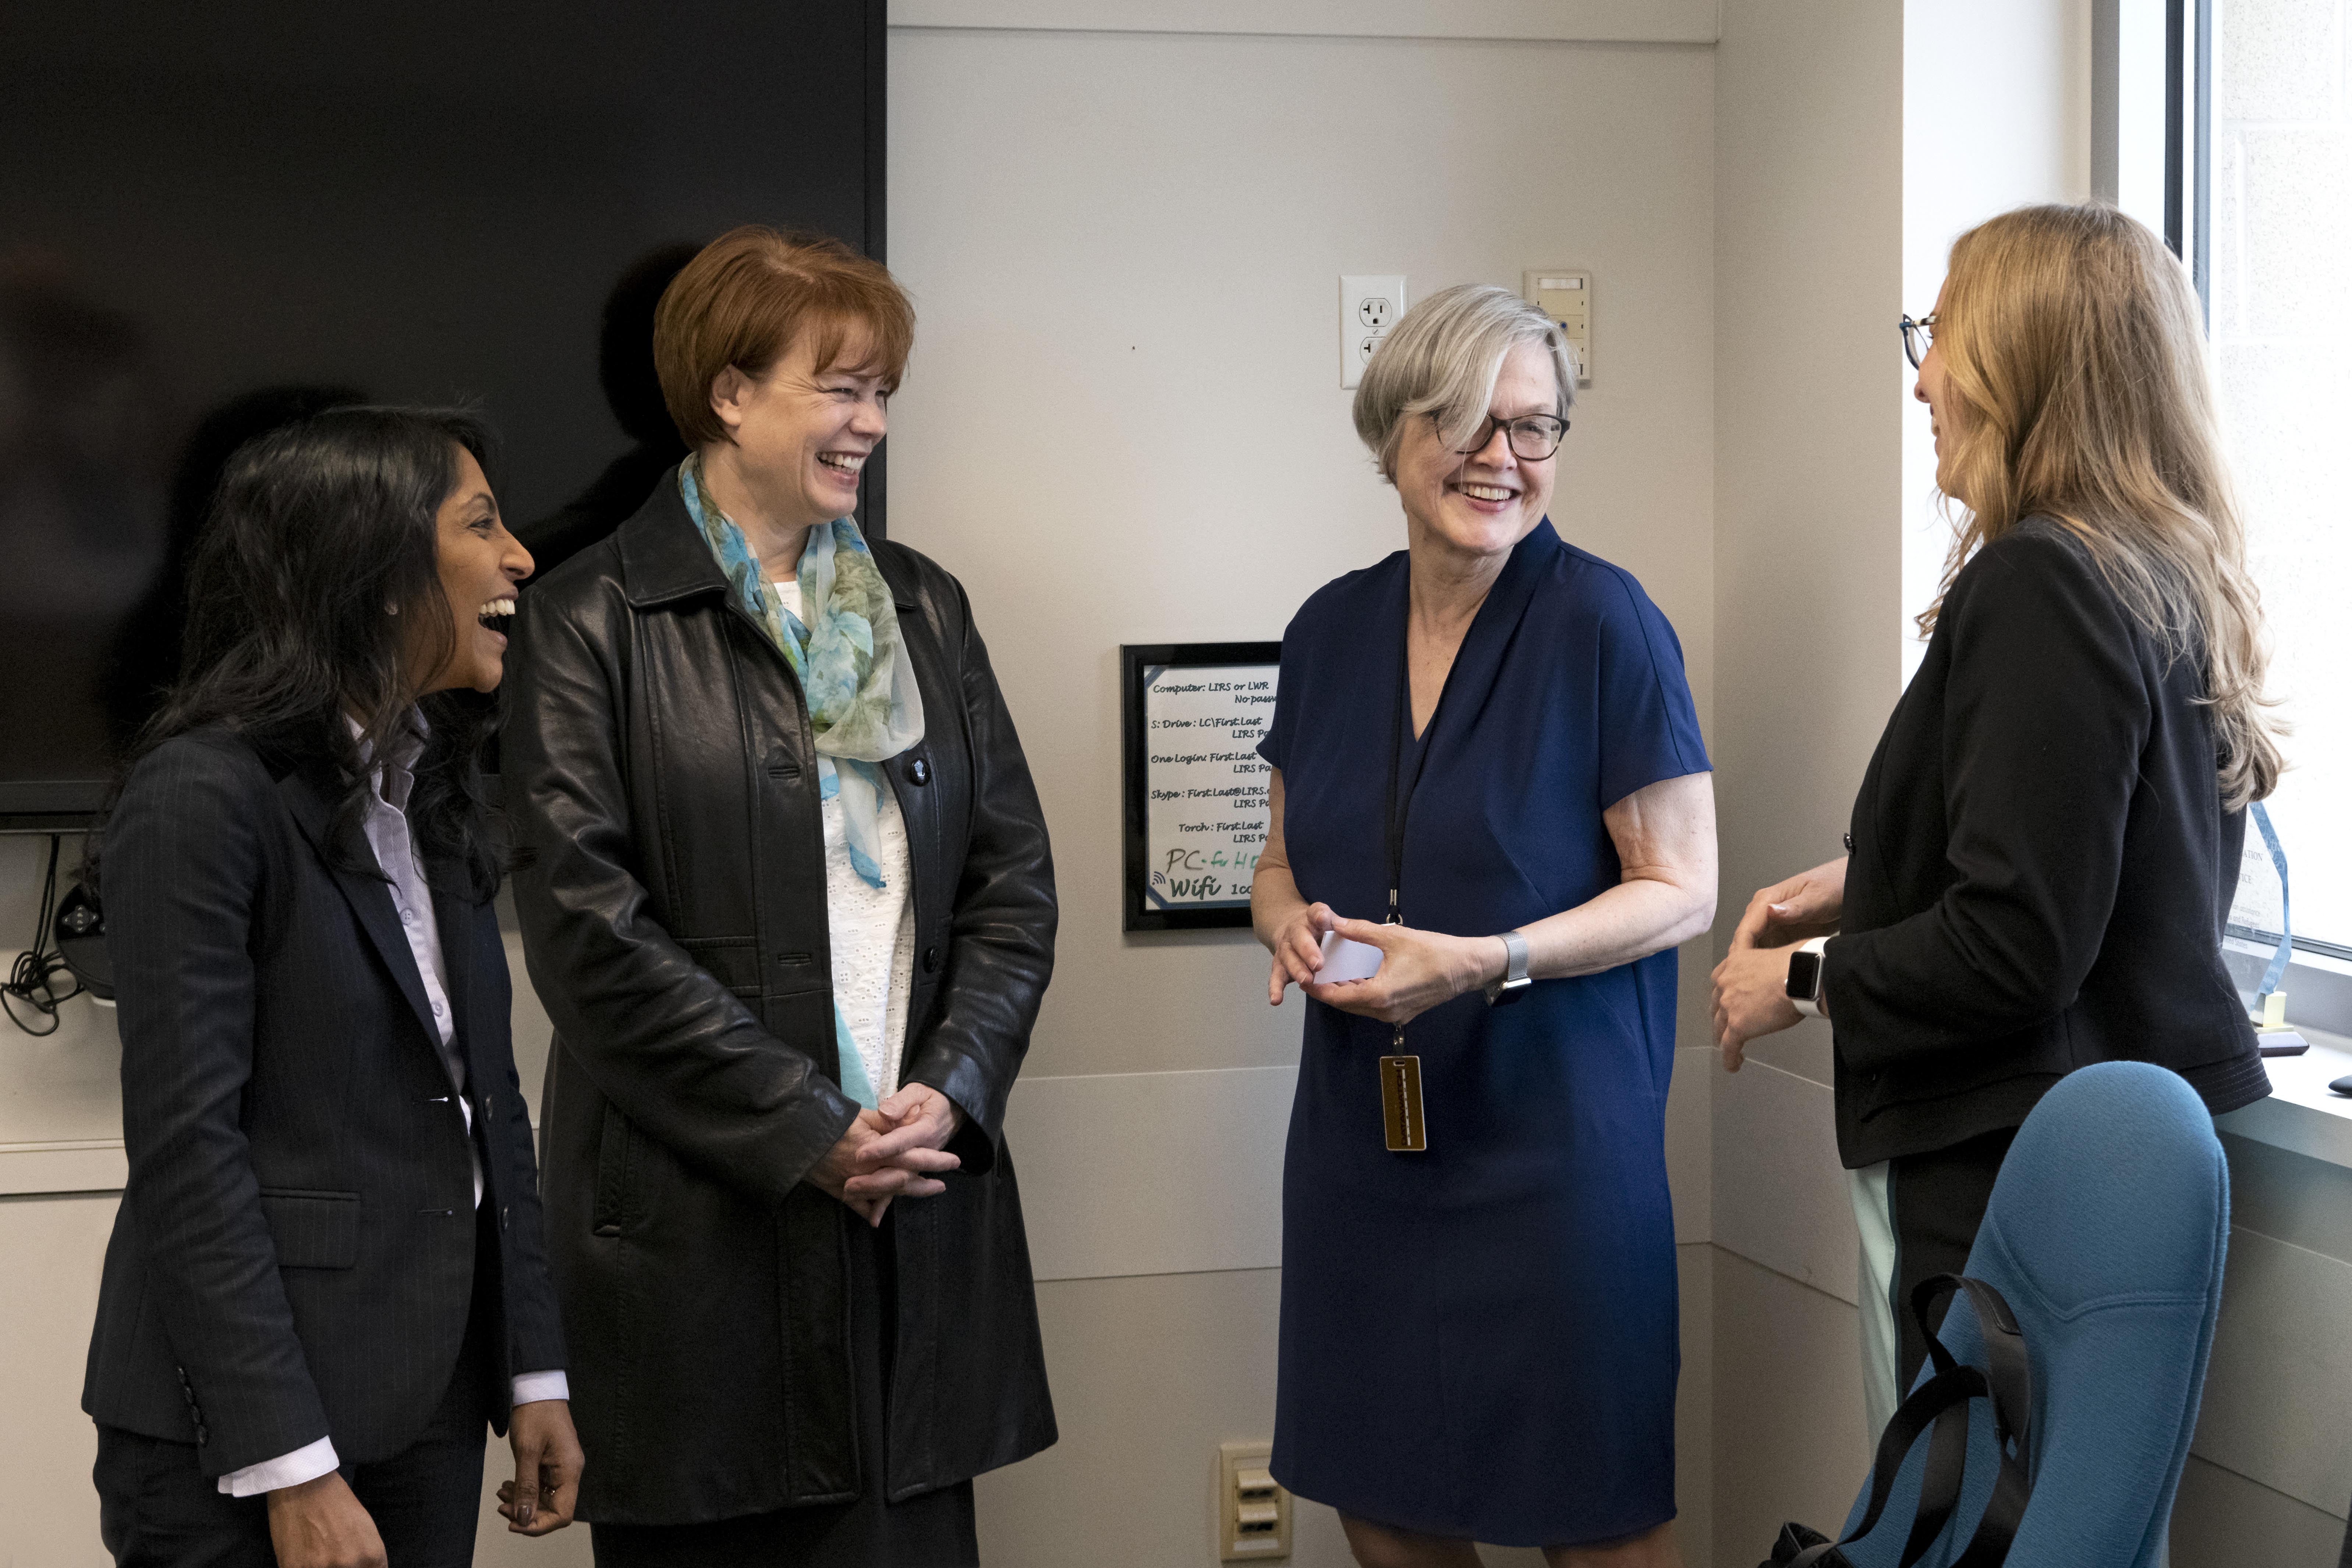 Krish O'Mara Vignarajah, left, president and CEO of Lutheran Immigration and Refugee Service (LIRS), and Kay Bellor, second from right, vice president for LIRS Programs, welcome Sister Sharon Eubank, second on the left, president of Latter-day Saint Charities, and Elissa McConkie, right, manager of Humanitarian Major Initiatives for the Church. Latter-day Saint Charities provided grants to several East Coast charities on May 14 and 15, 2019.